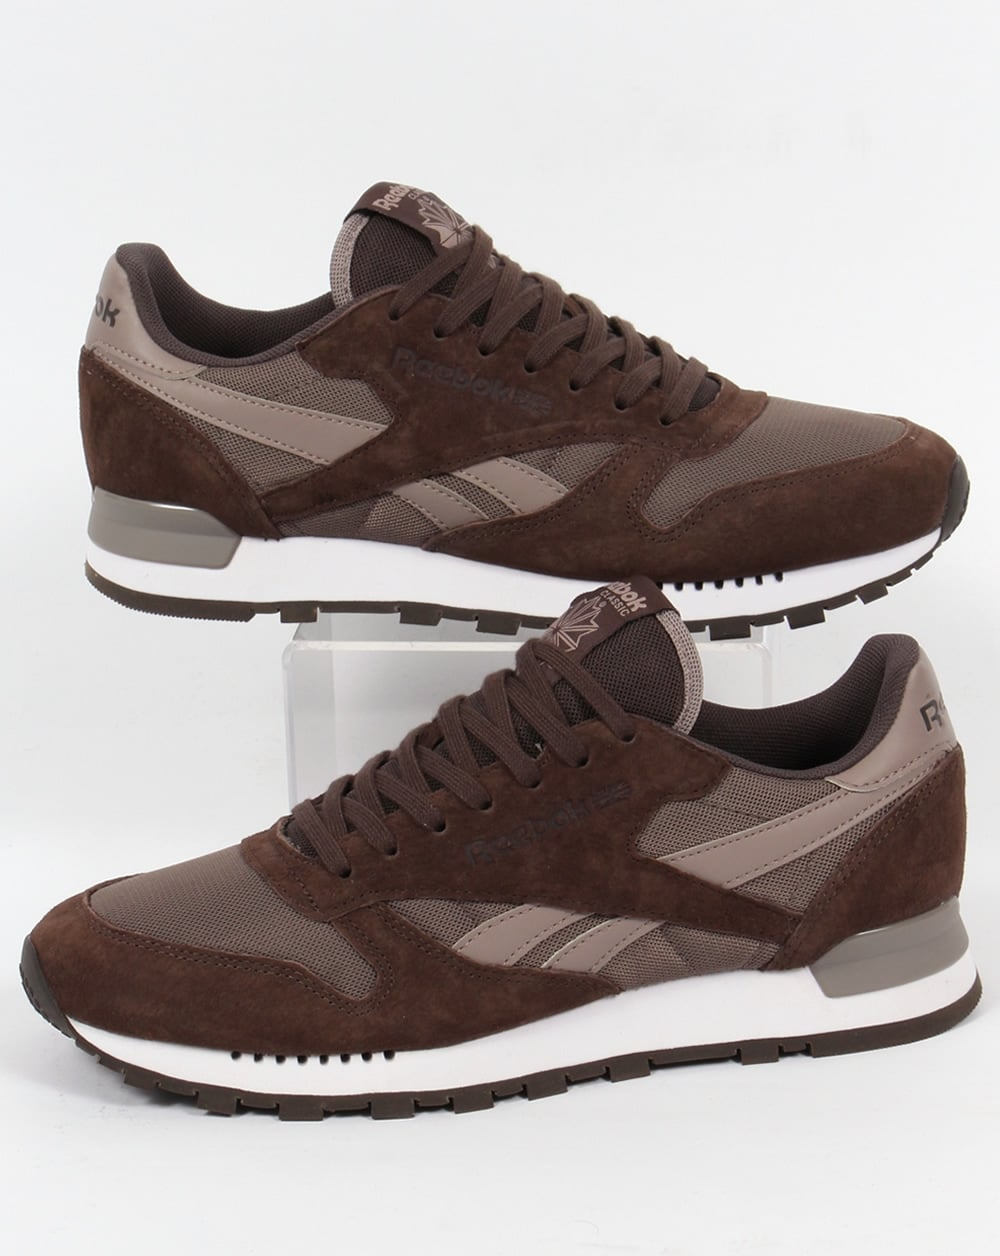 4ce1a7753ae Reebok Reebok Classic Leather Clip Trainers Cliff Stone